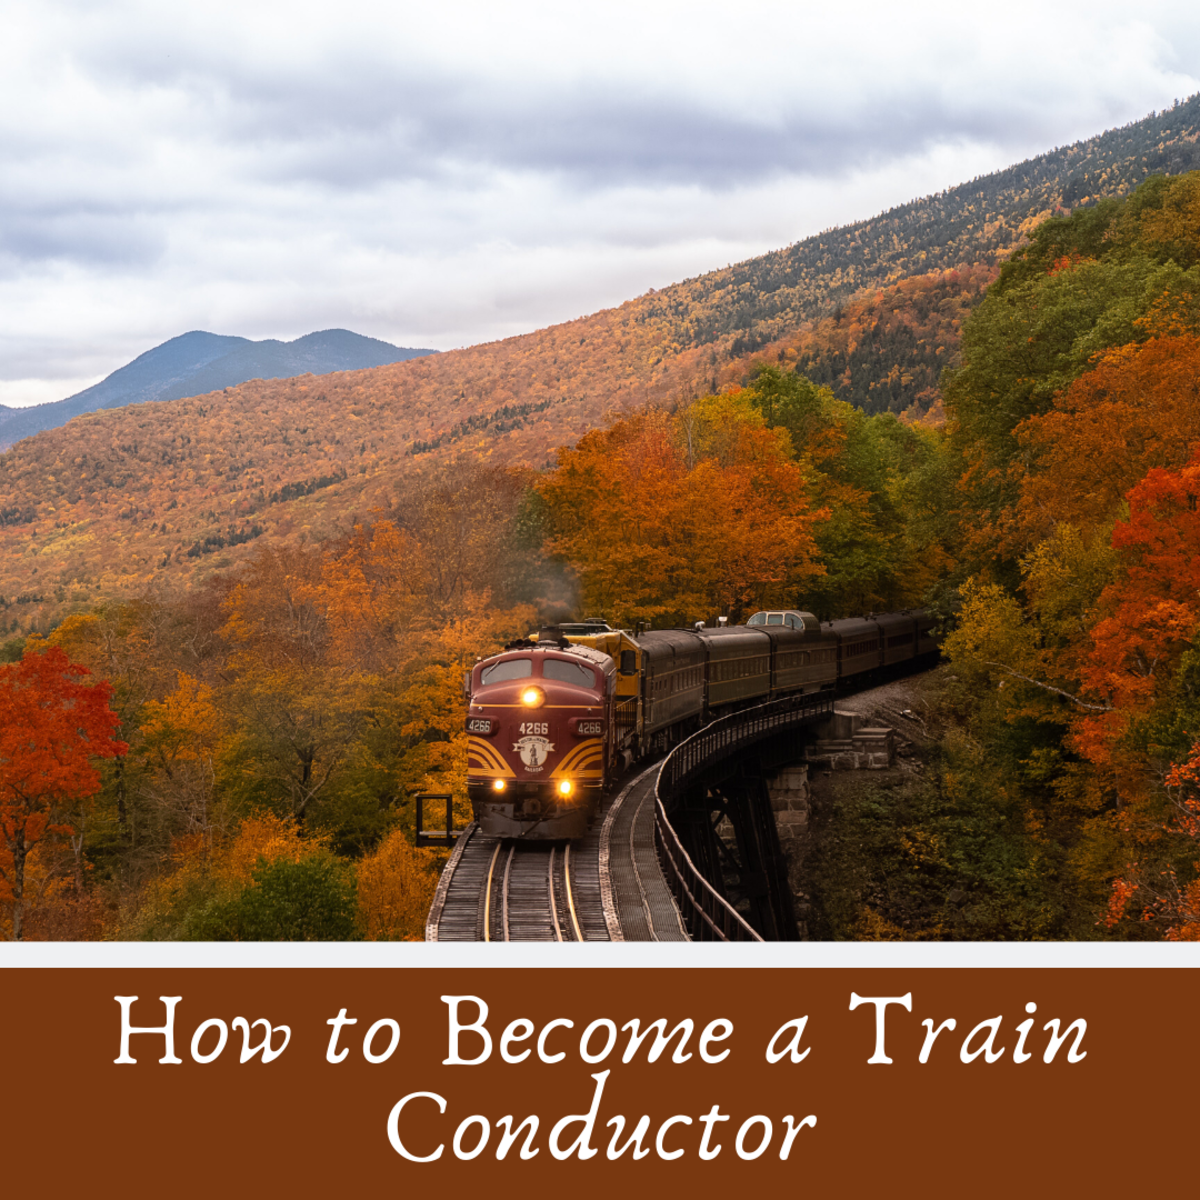 Learn the ins and outs of becoming a Train Conductor for CN.